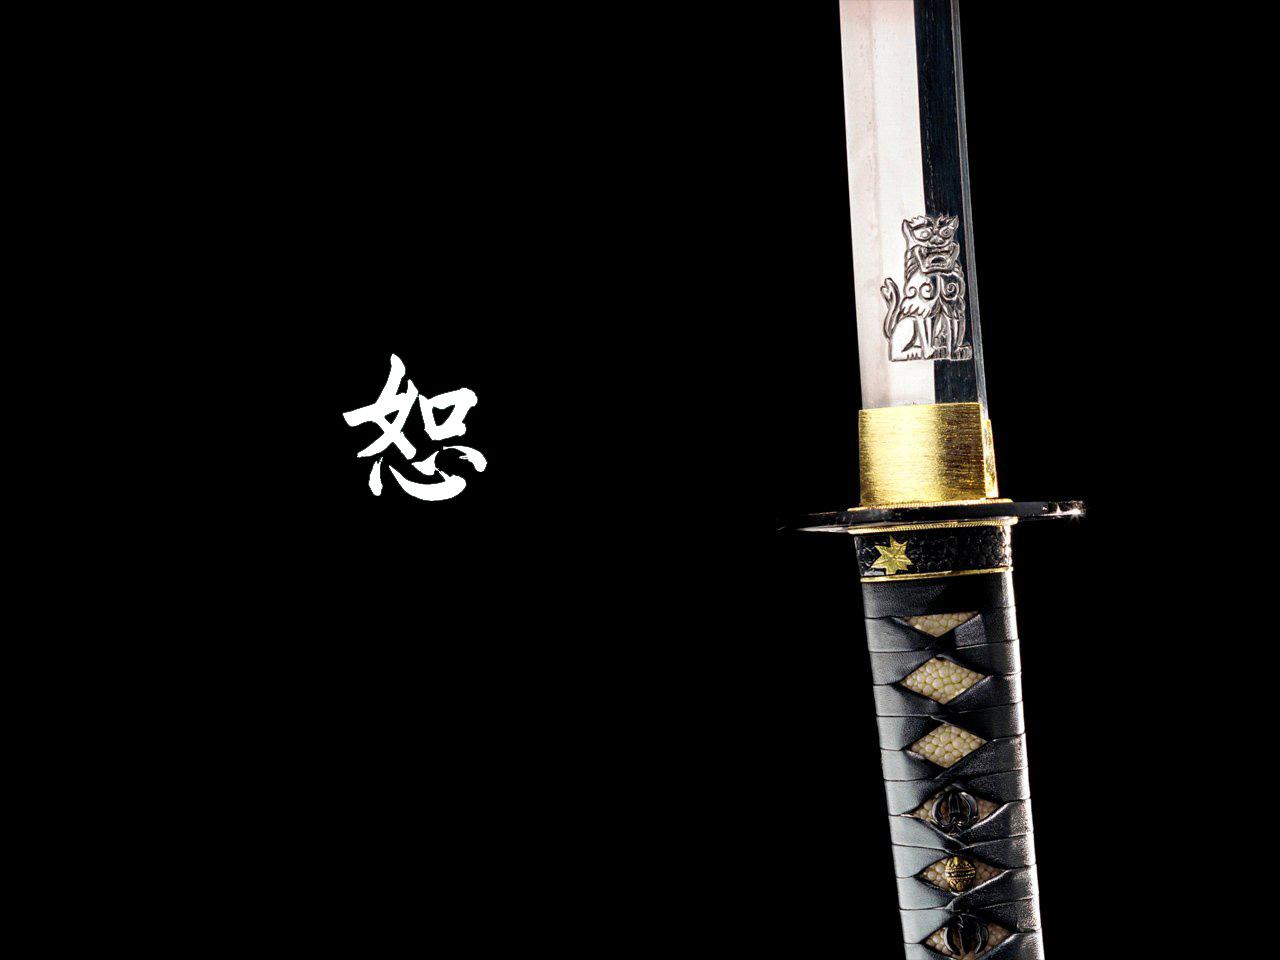 Wallpaper Design Web katana